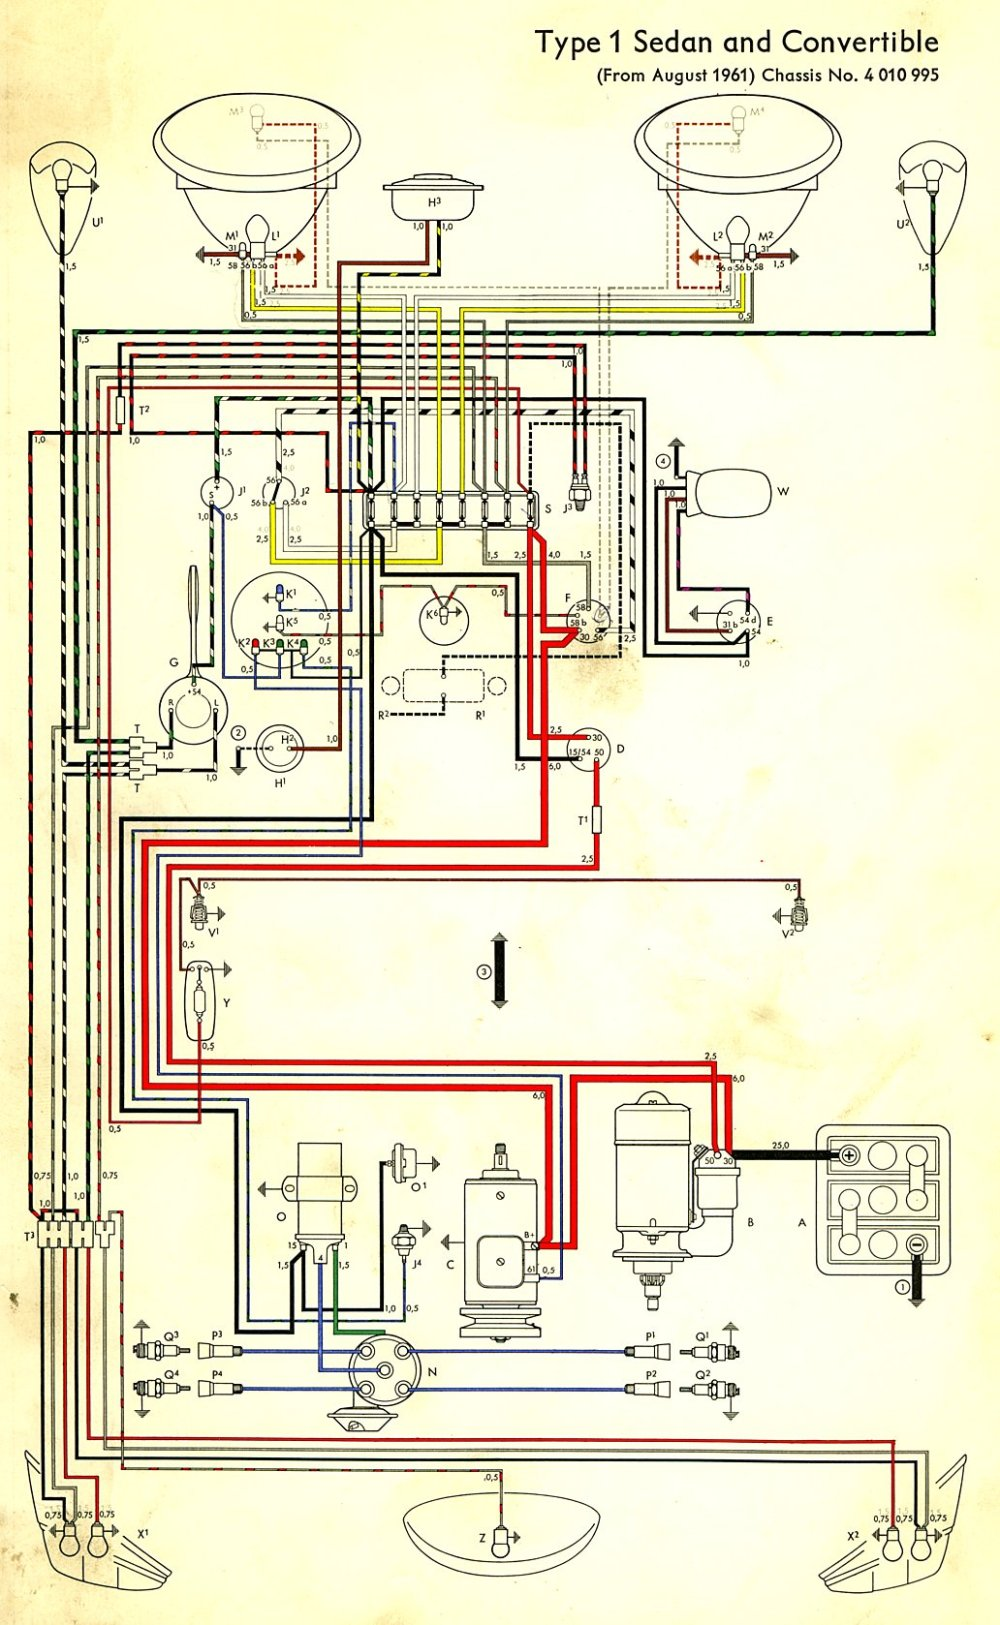 medium resolution of 1962 beetle wiring diagram thegoldenbug com wiring diagram 2003 vw beetle 1962 vw beetle wiring diagram